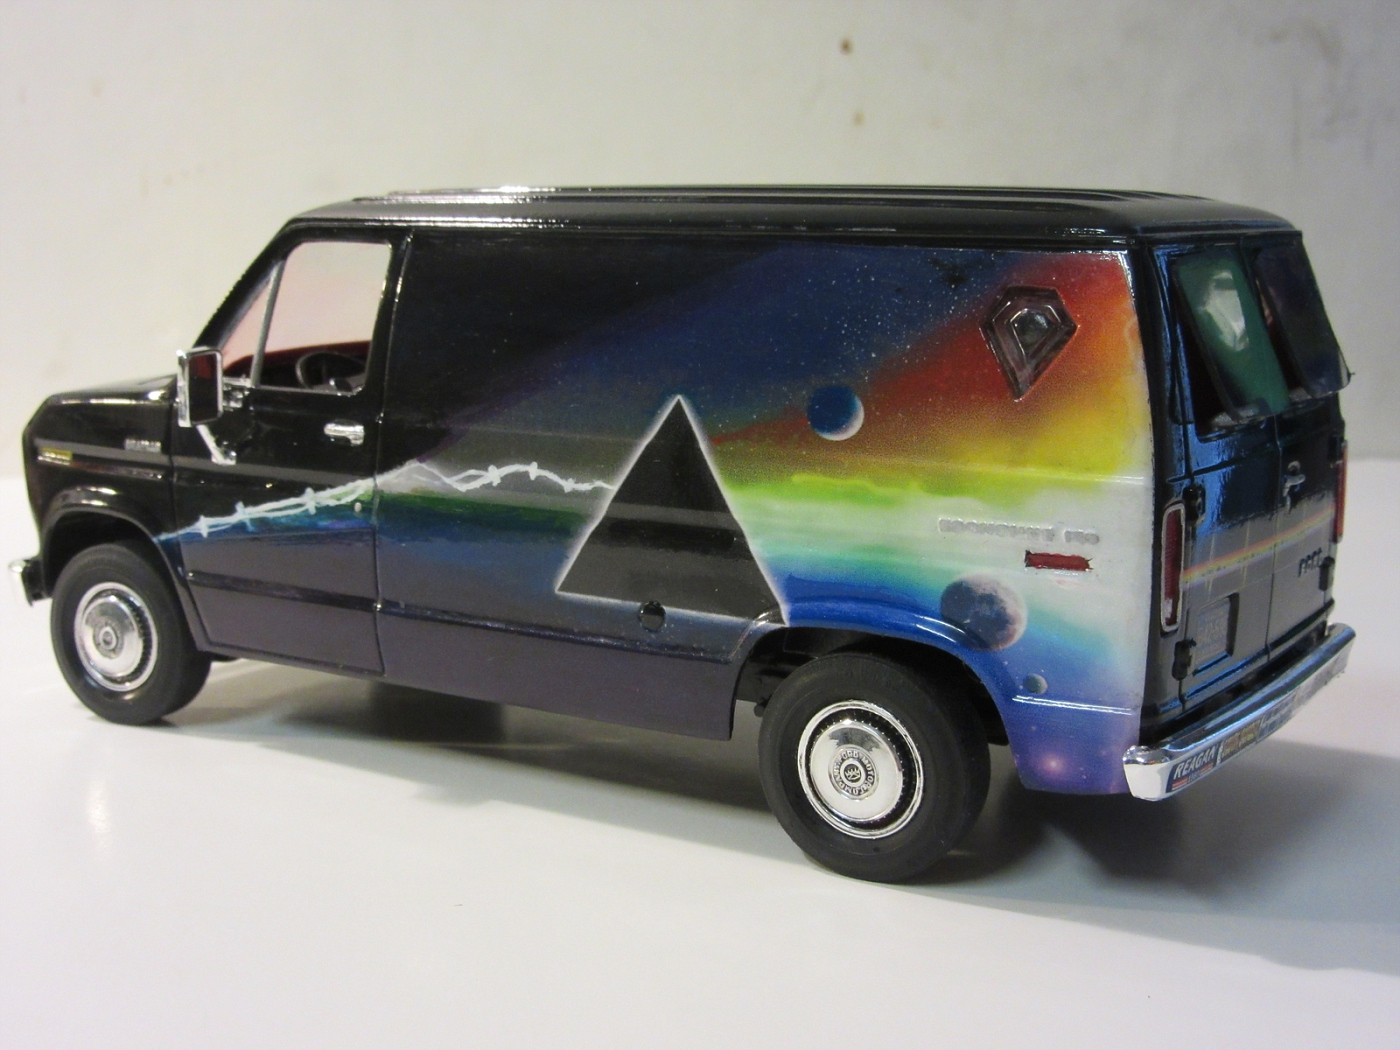 Ford Pink Floyd Van Under Glass Pickups Vans Suvs